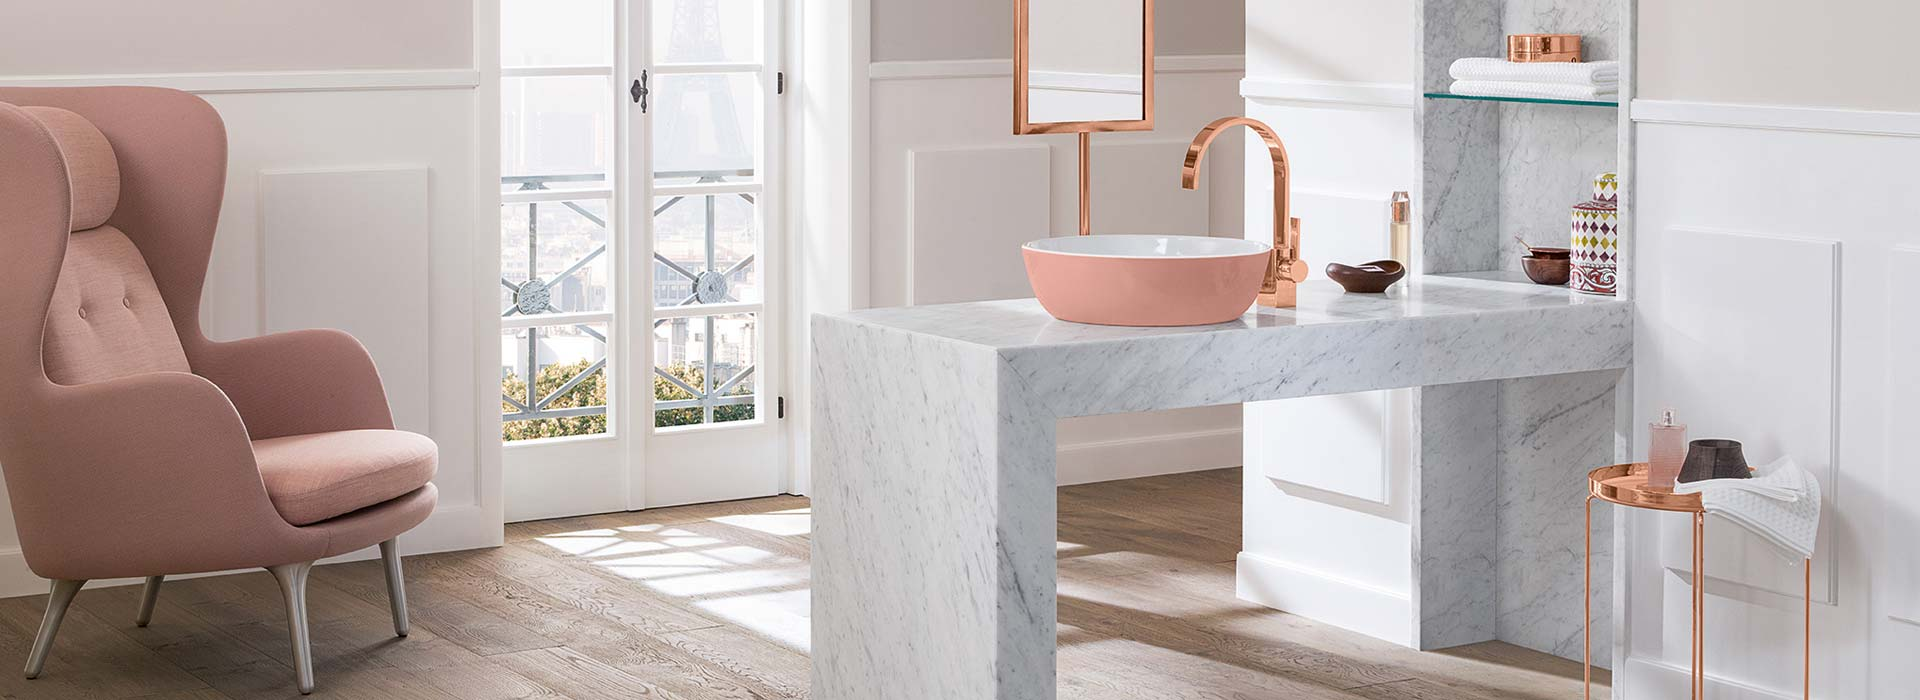 bathroom remodel on your new year to do list - Inno Be Liste De Mariage